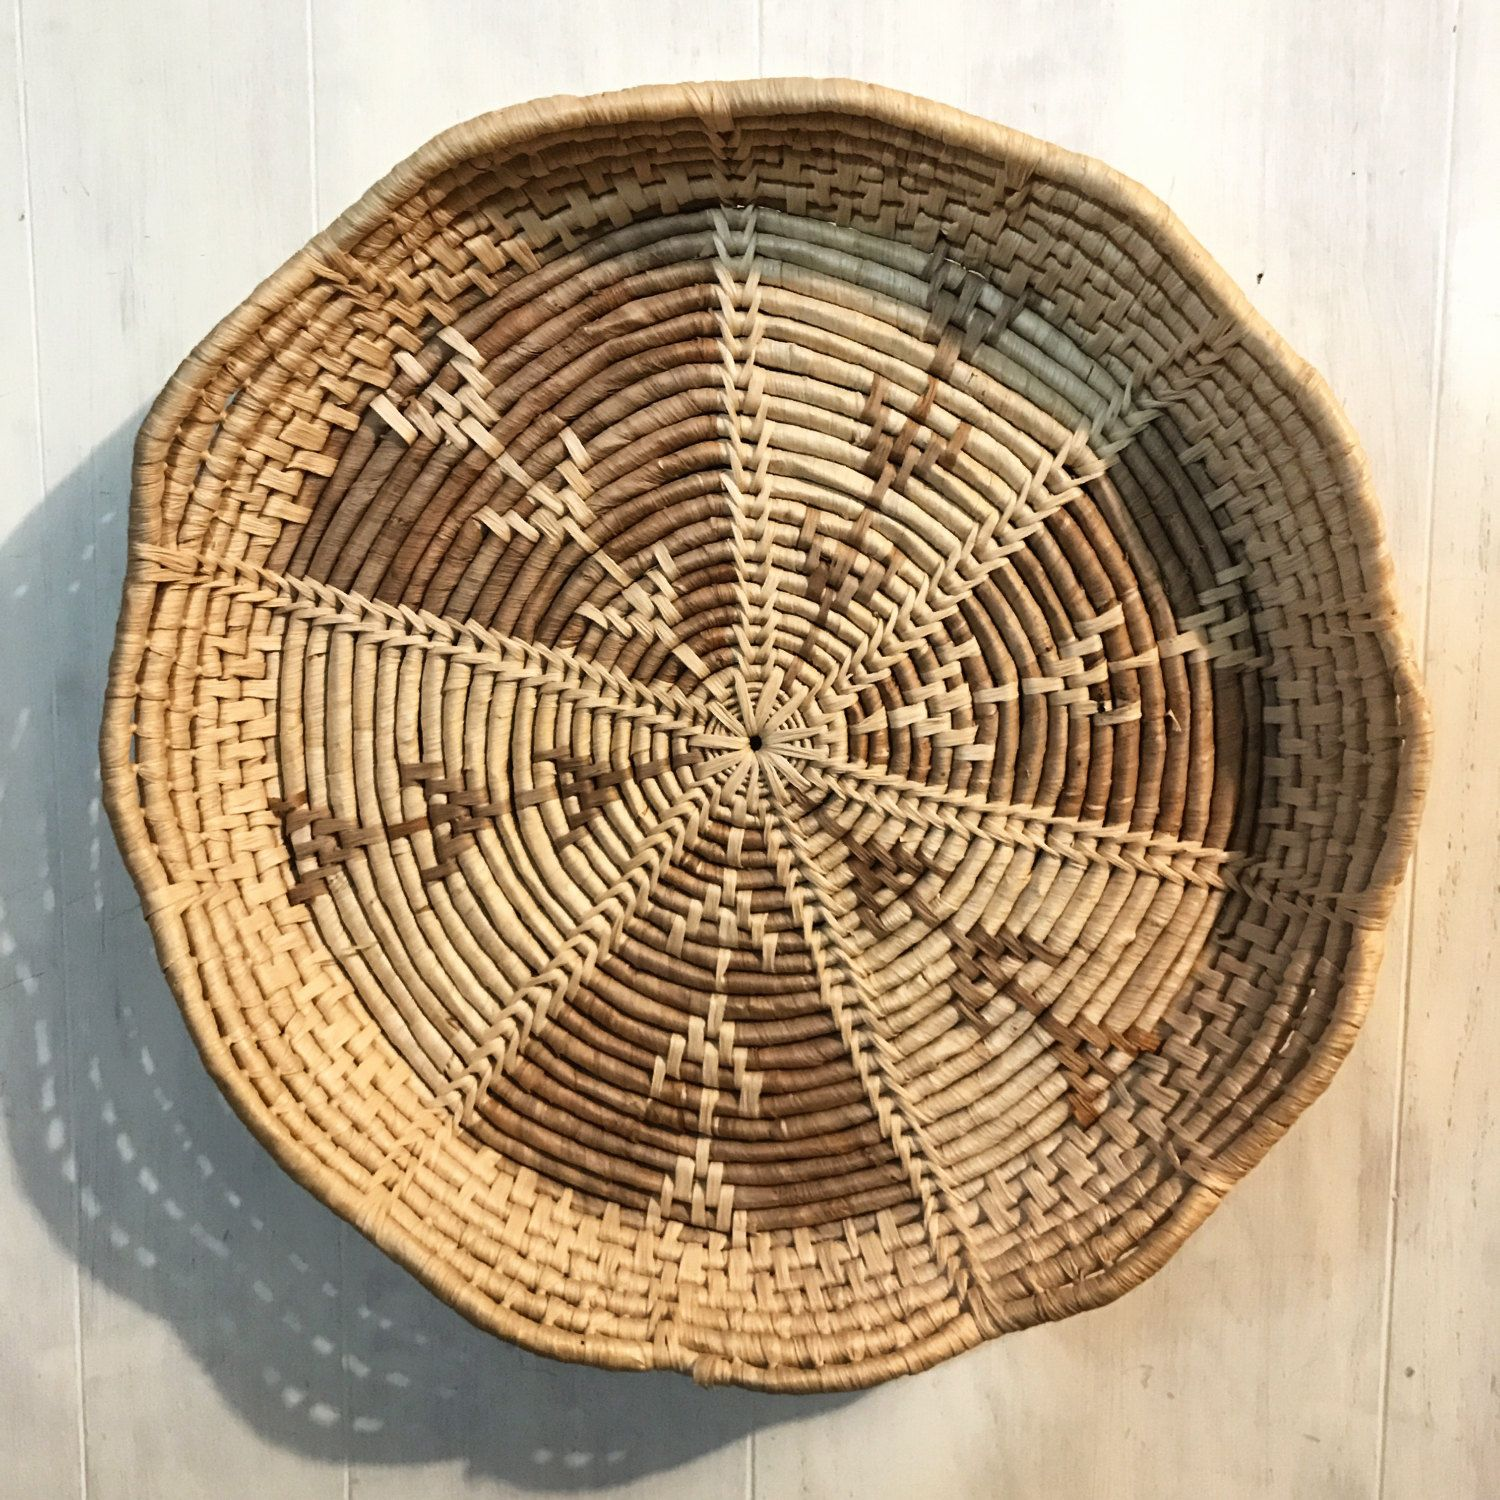 Large wall basket woven straw round basket tray boho wall large wall basket woven straw round basket tray boho wall decor by ninedoorsvintage on amipublicfo Choice Image